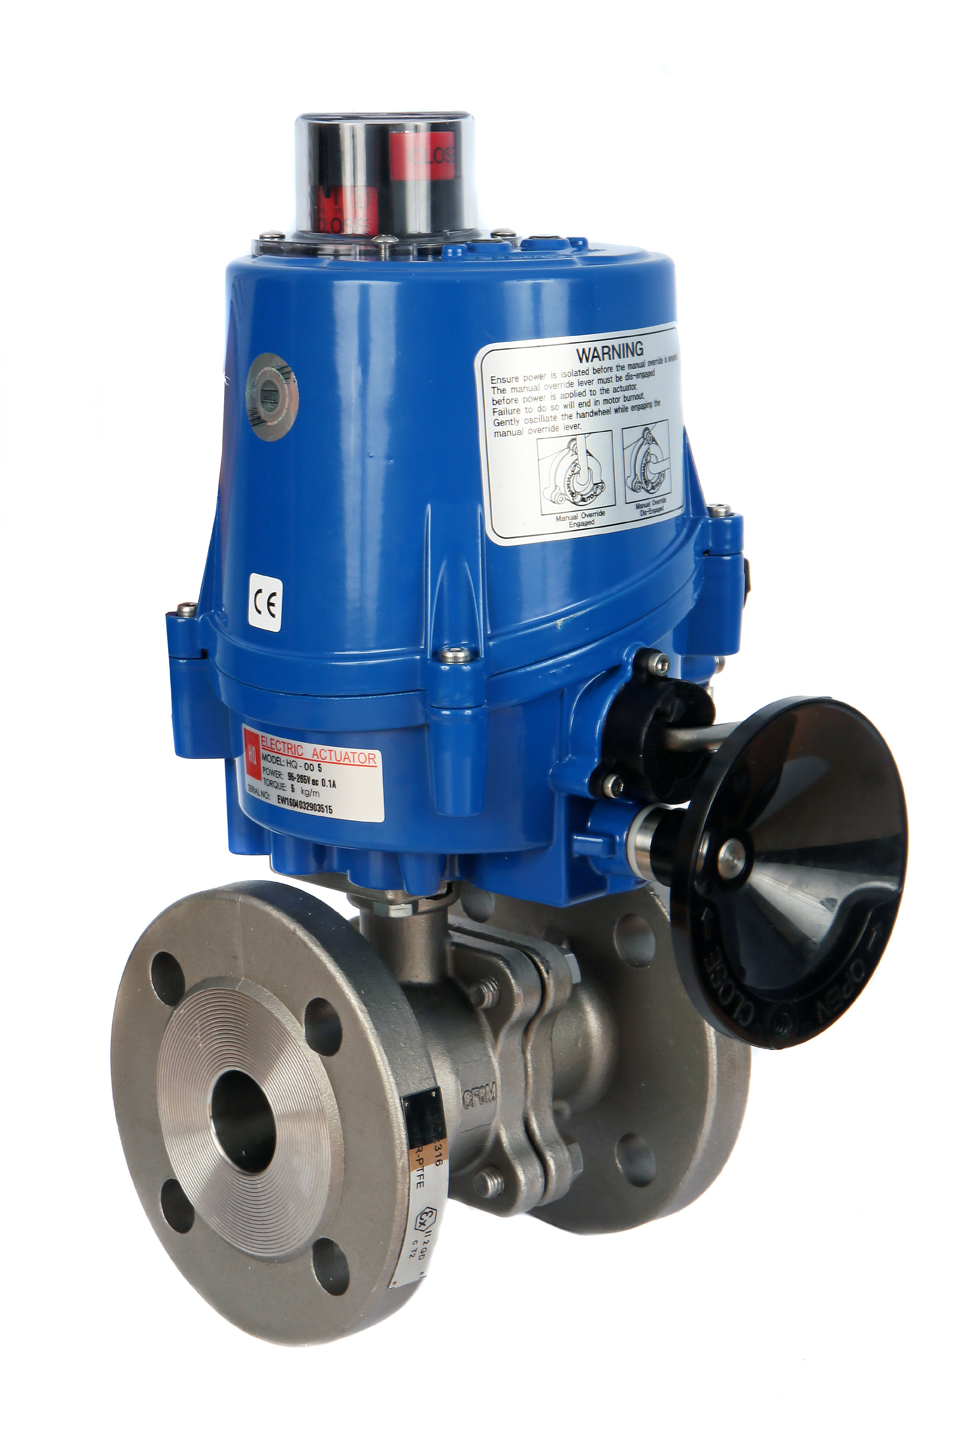 Making the right actuator choice - Mepca Engineering